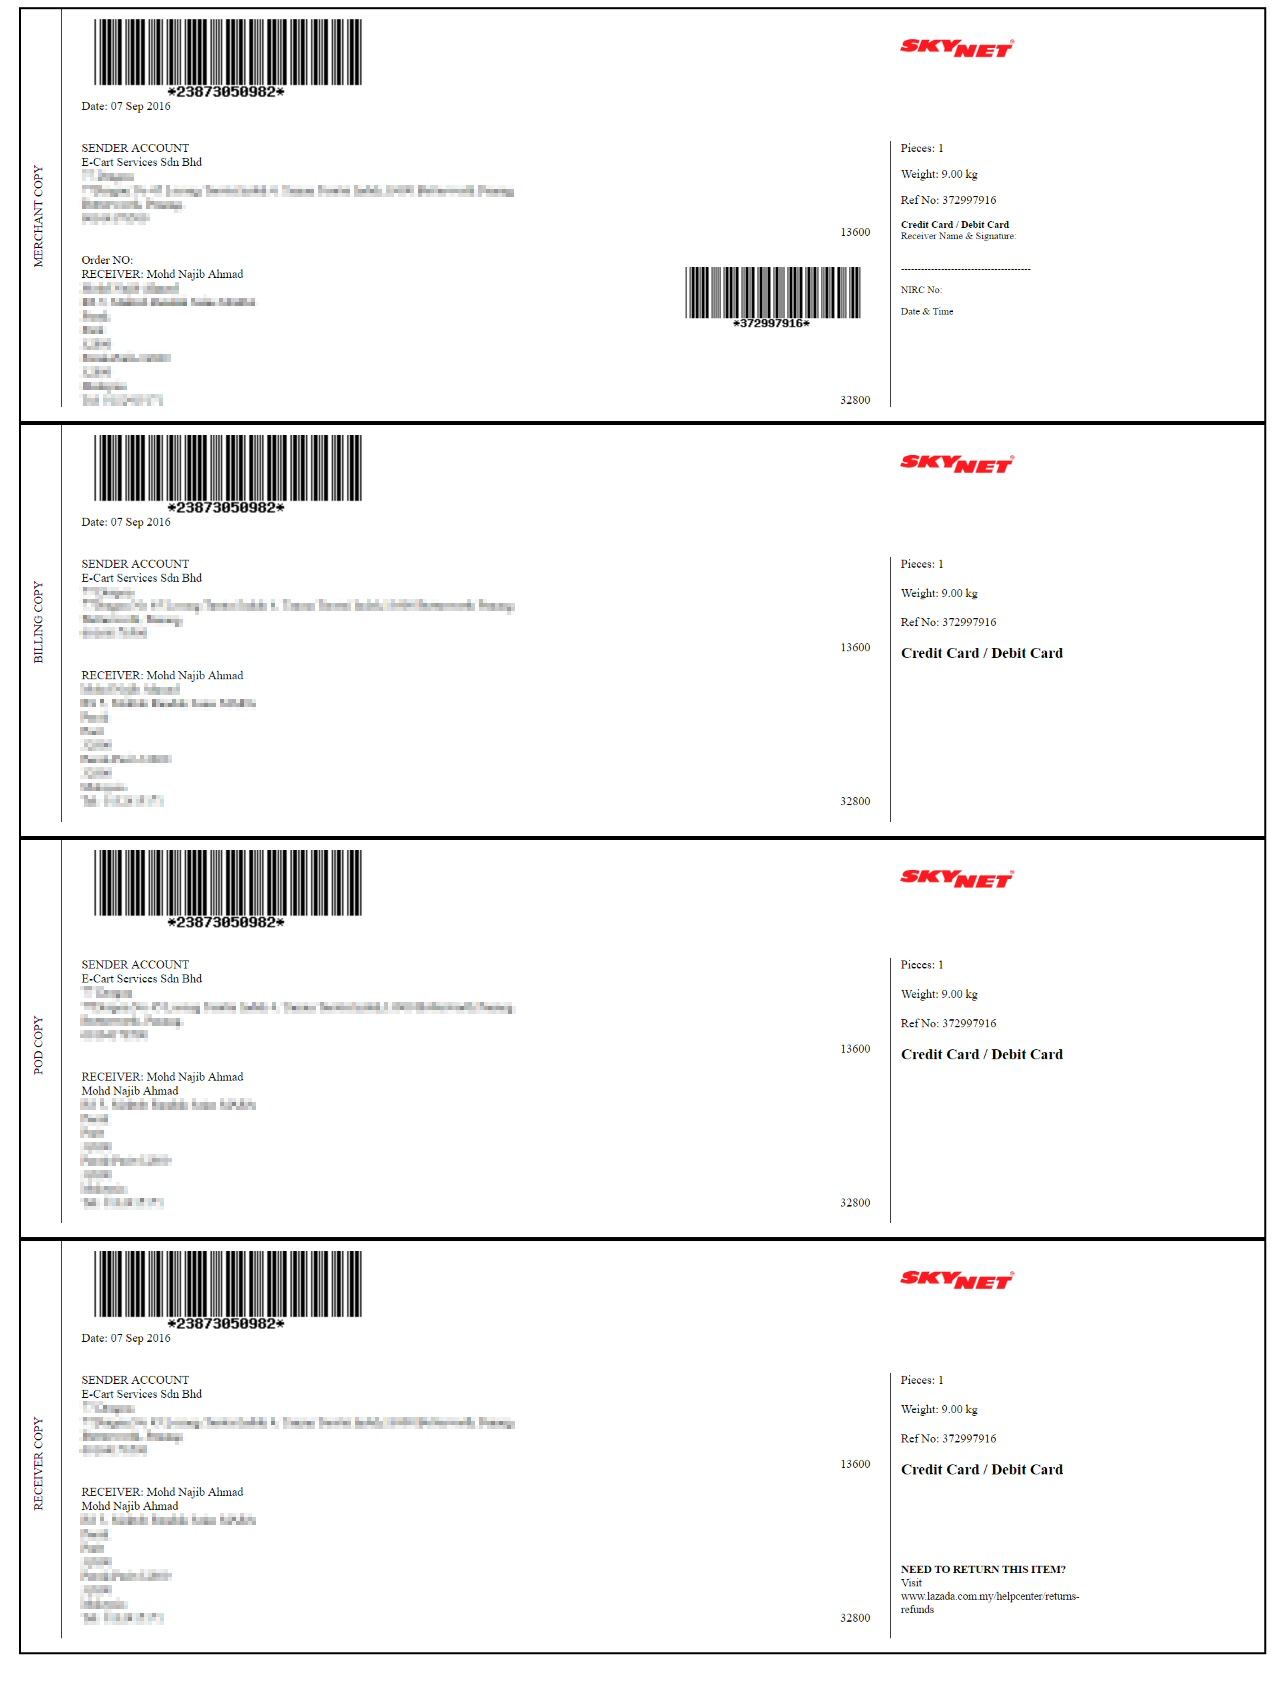 lazada-shipping-labels-print-example